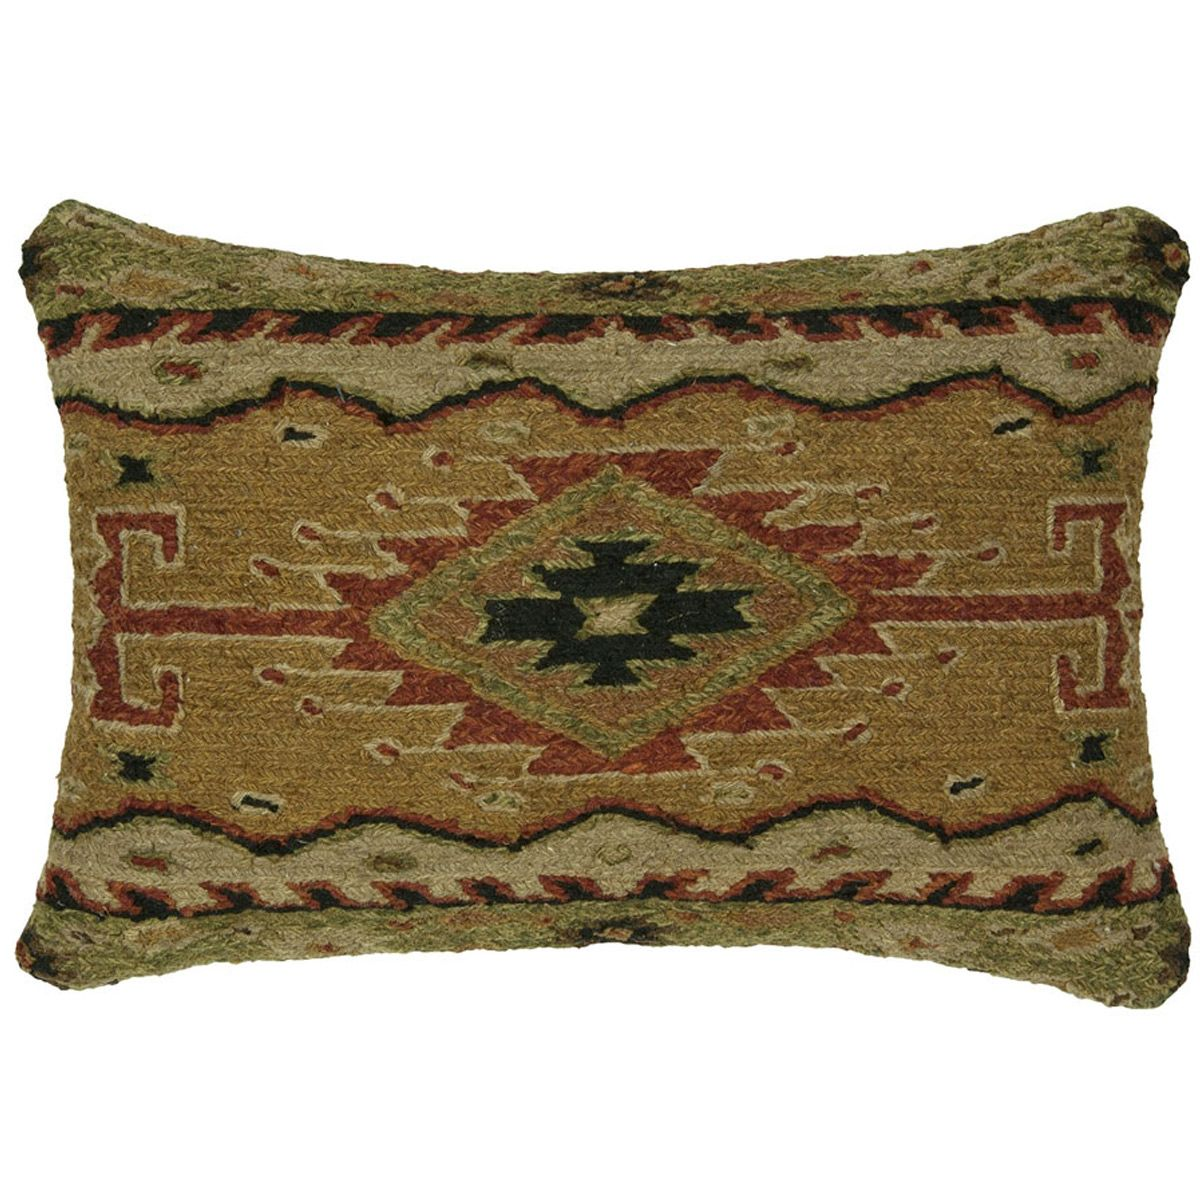 Angel Fire Sun Pillow - 22 x 14